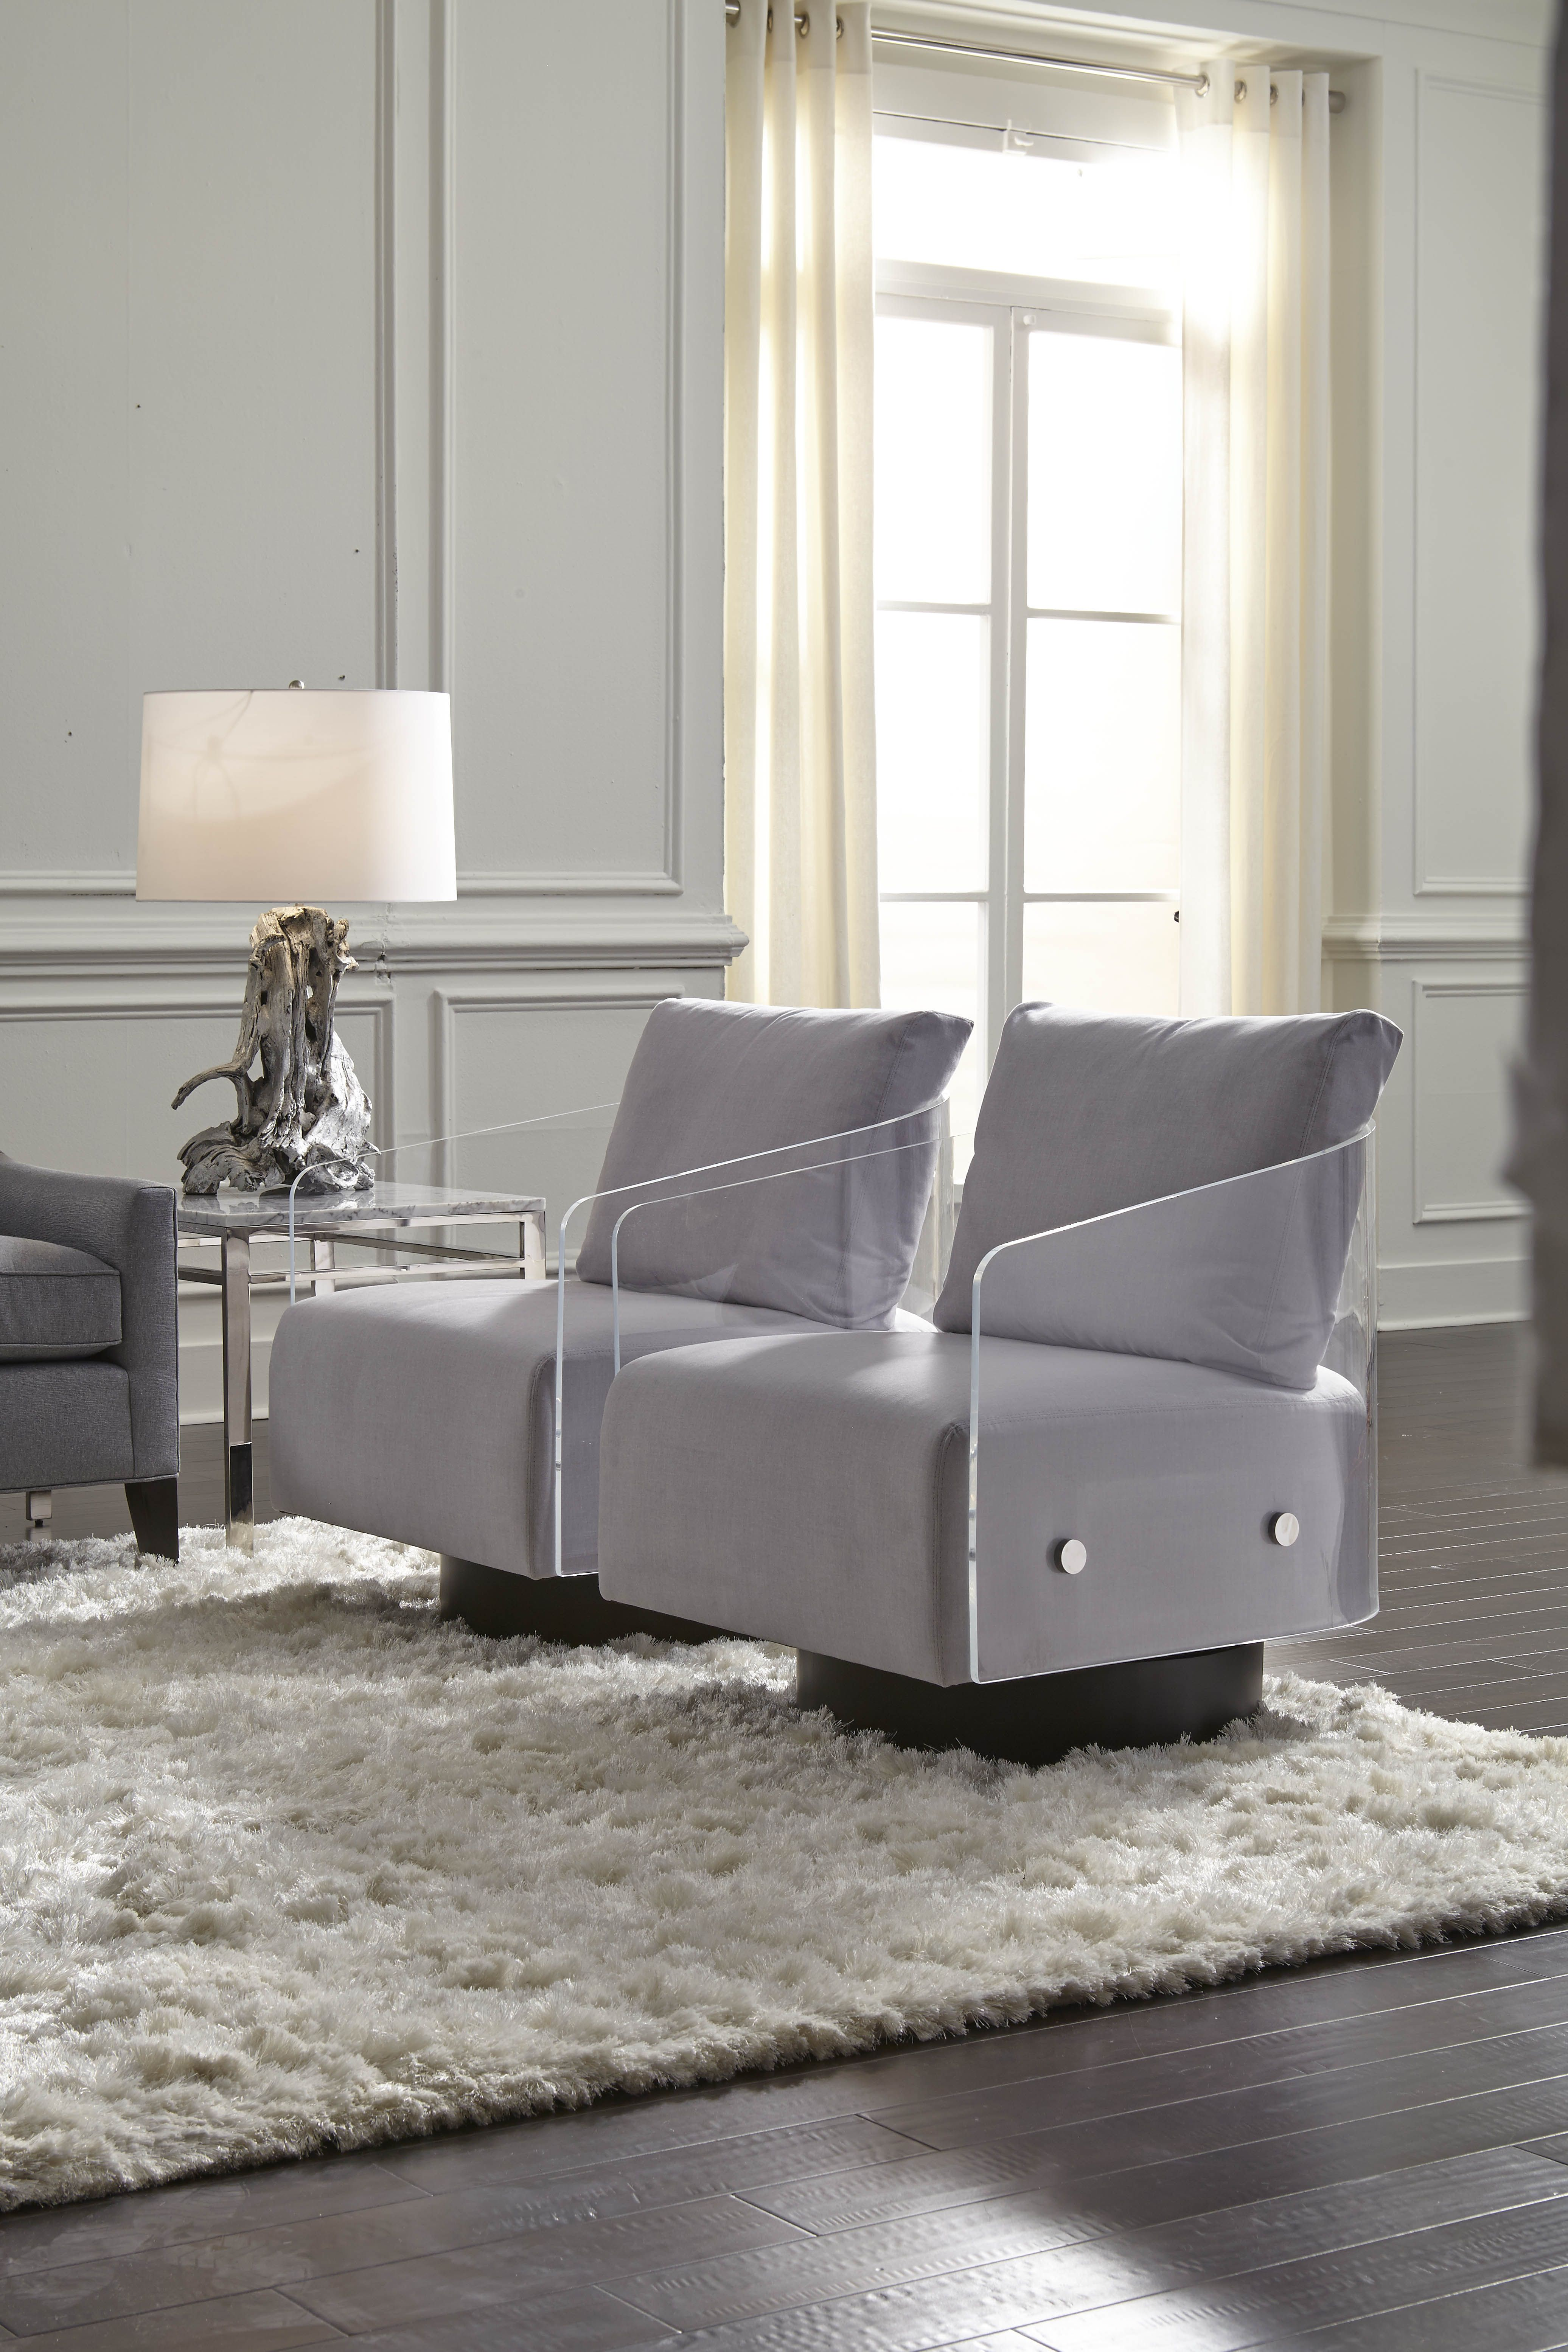 Our Sweet U0026 Sexy Lucy Swivel Chair Is Incredibly Stylish And Comfortable.  #acrylic #clear #furniture #modern